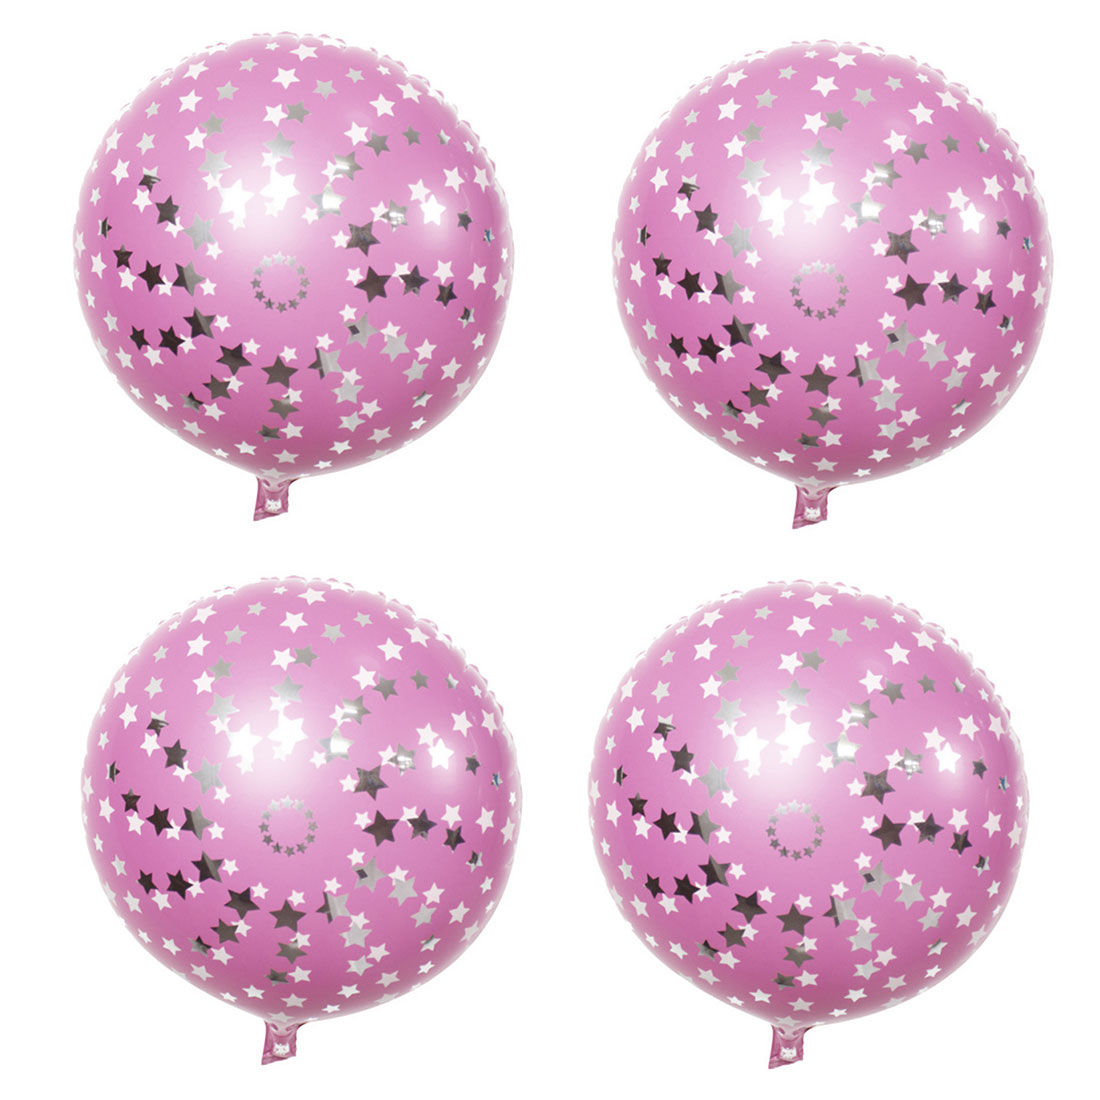 Unique Bargains Birthday Wedding Foil Star Pattern Round Inflation Balloon Pink 18 Inches 4pcs - image 4 de 4